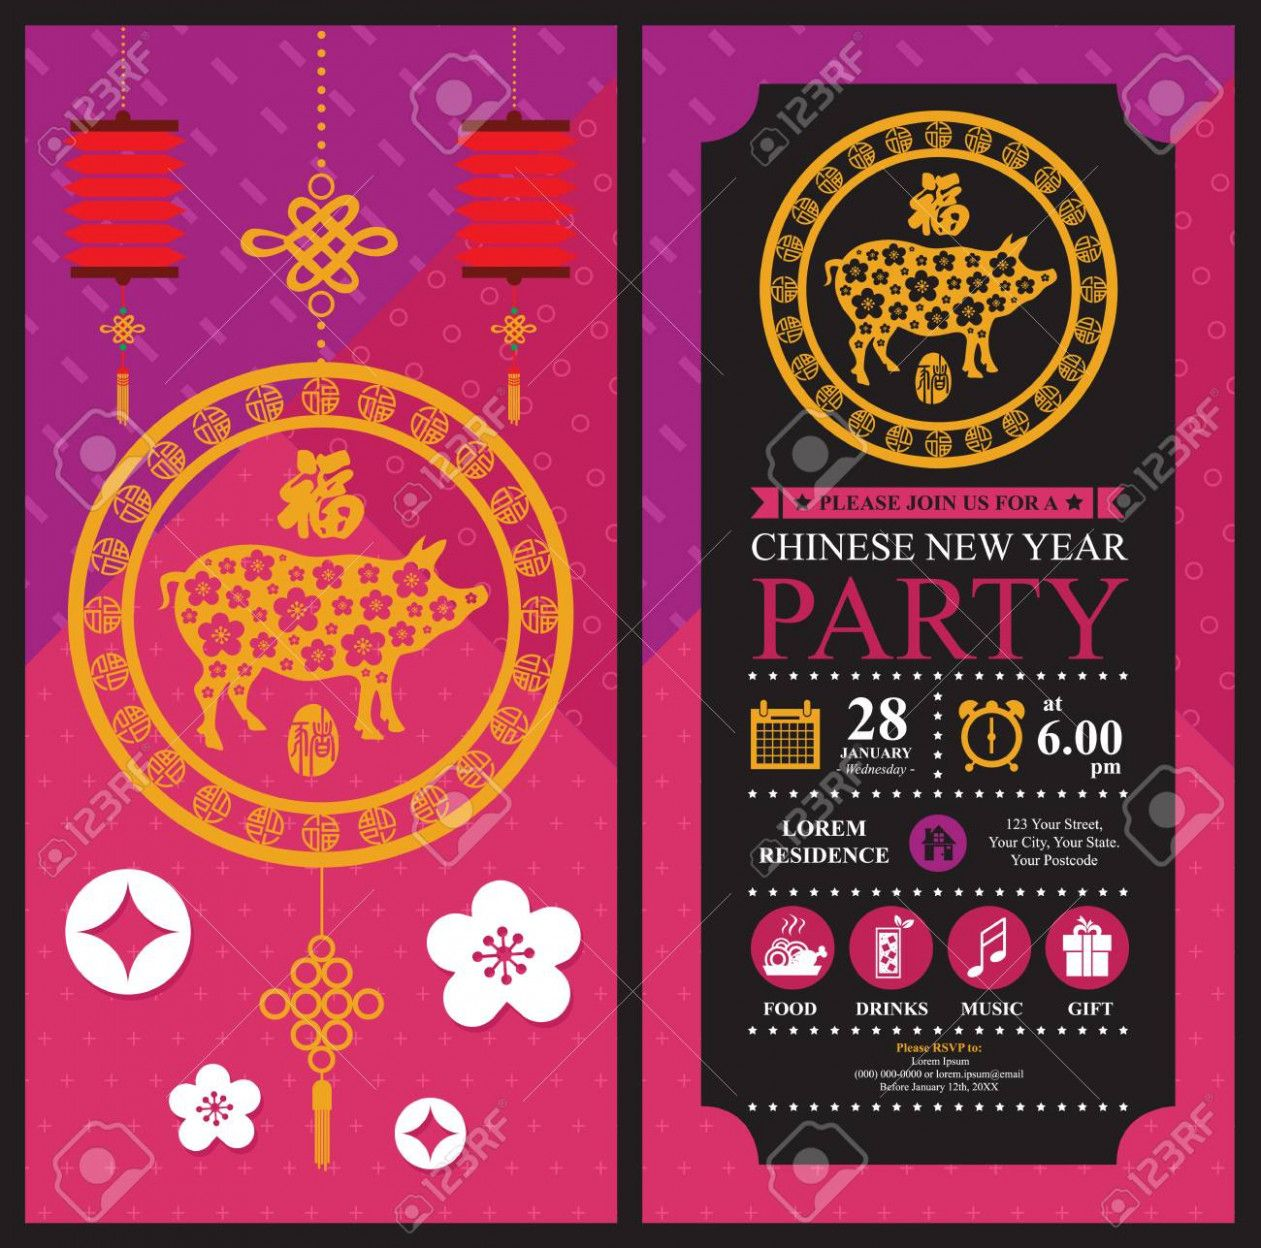 Chinese New Year Invitation Card Chinese new year party